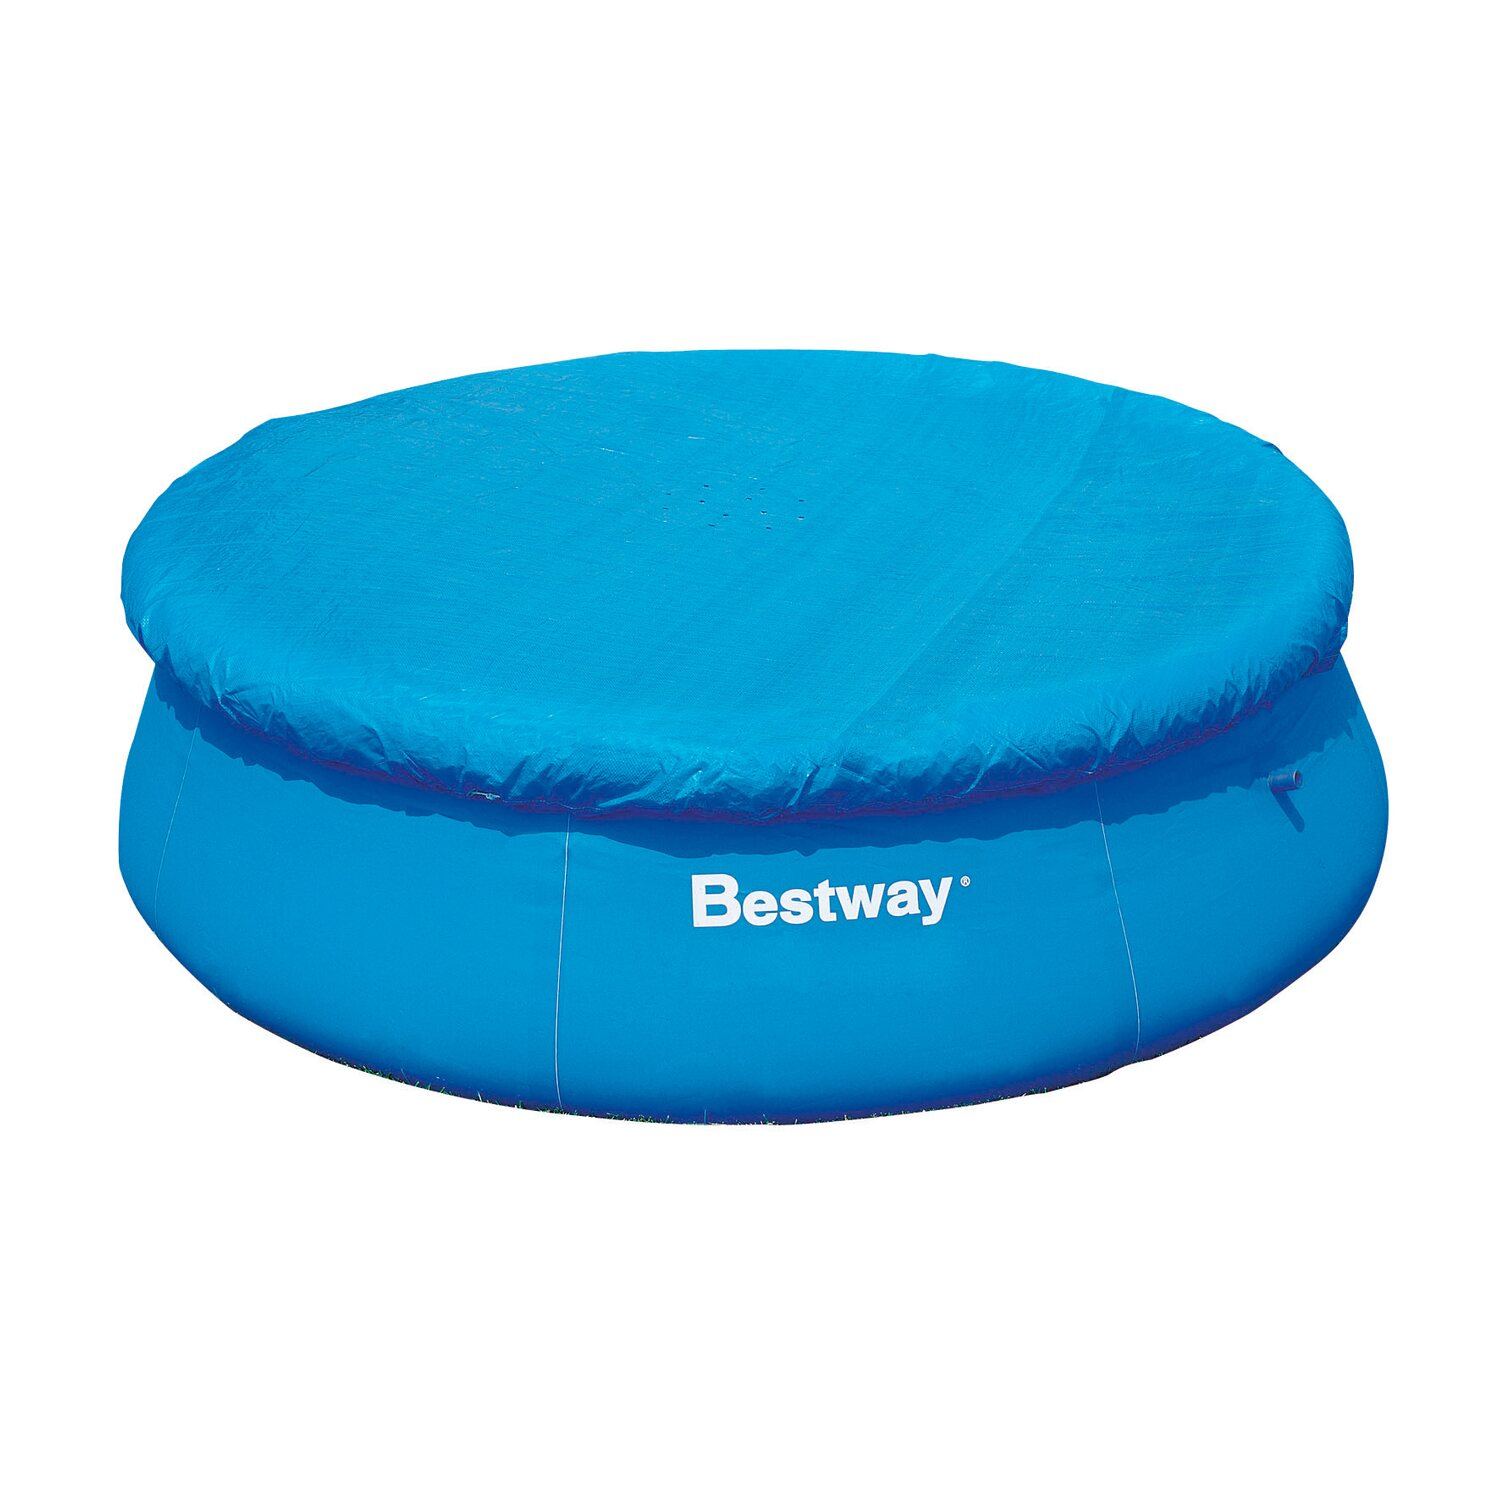 Kryc plachta na baz n pro baz ny bestway fast pool o for Bestway pool obi